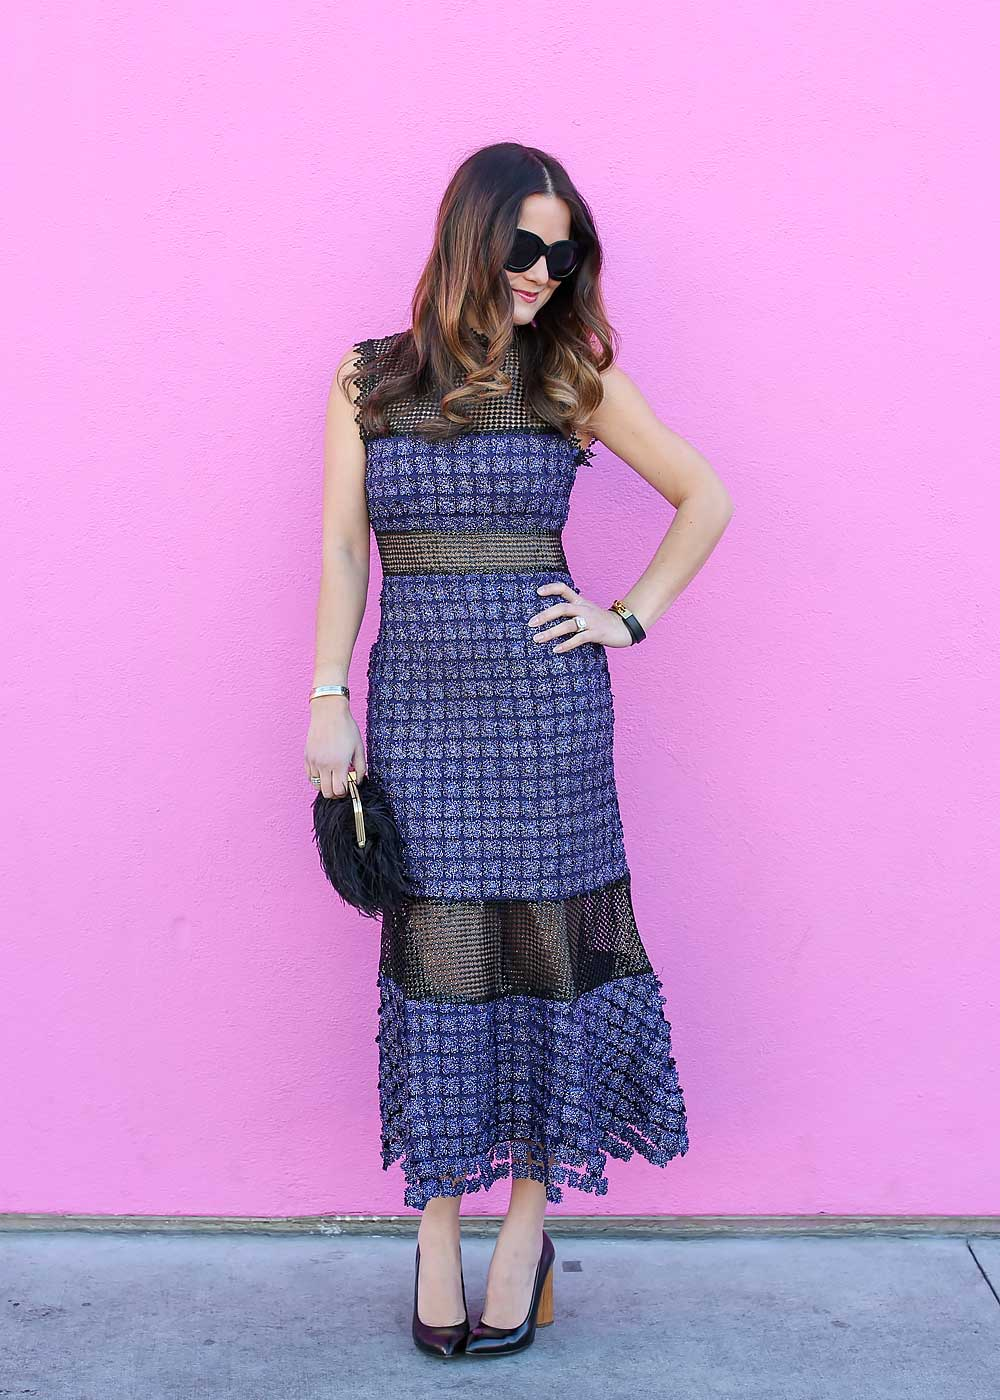 fashion bloggers who love to wear color